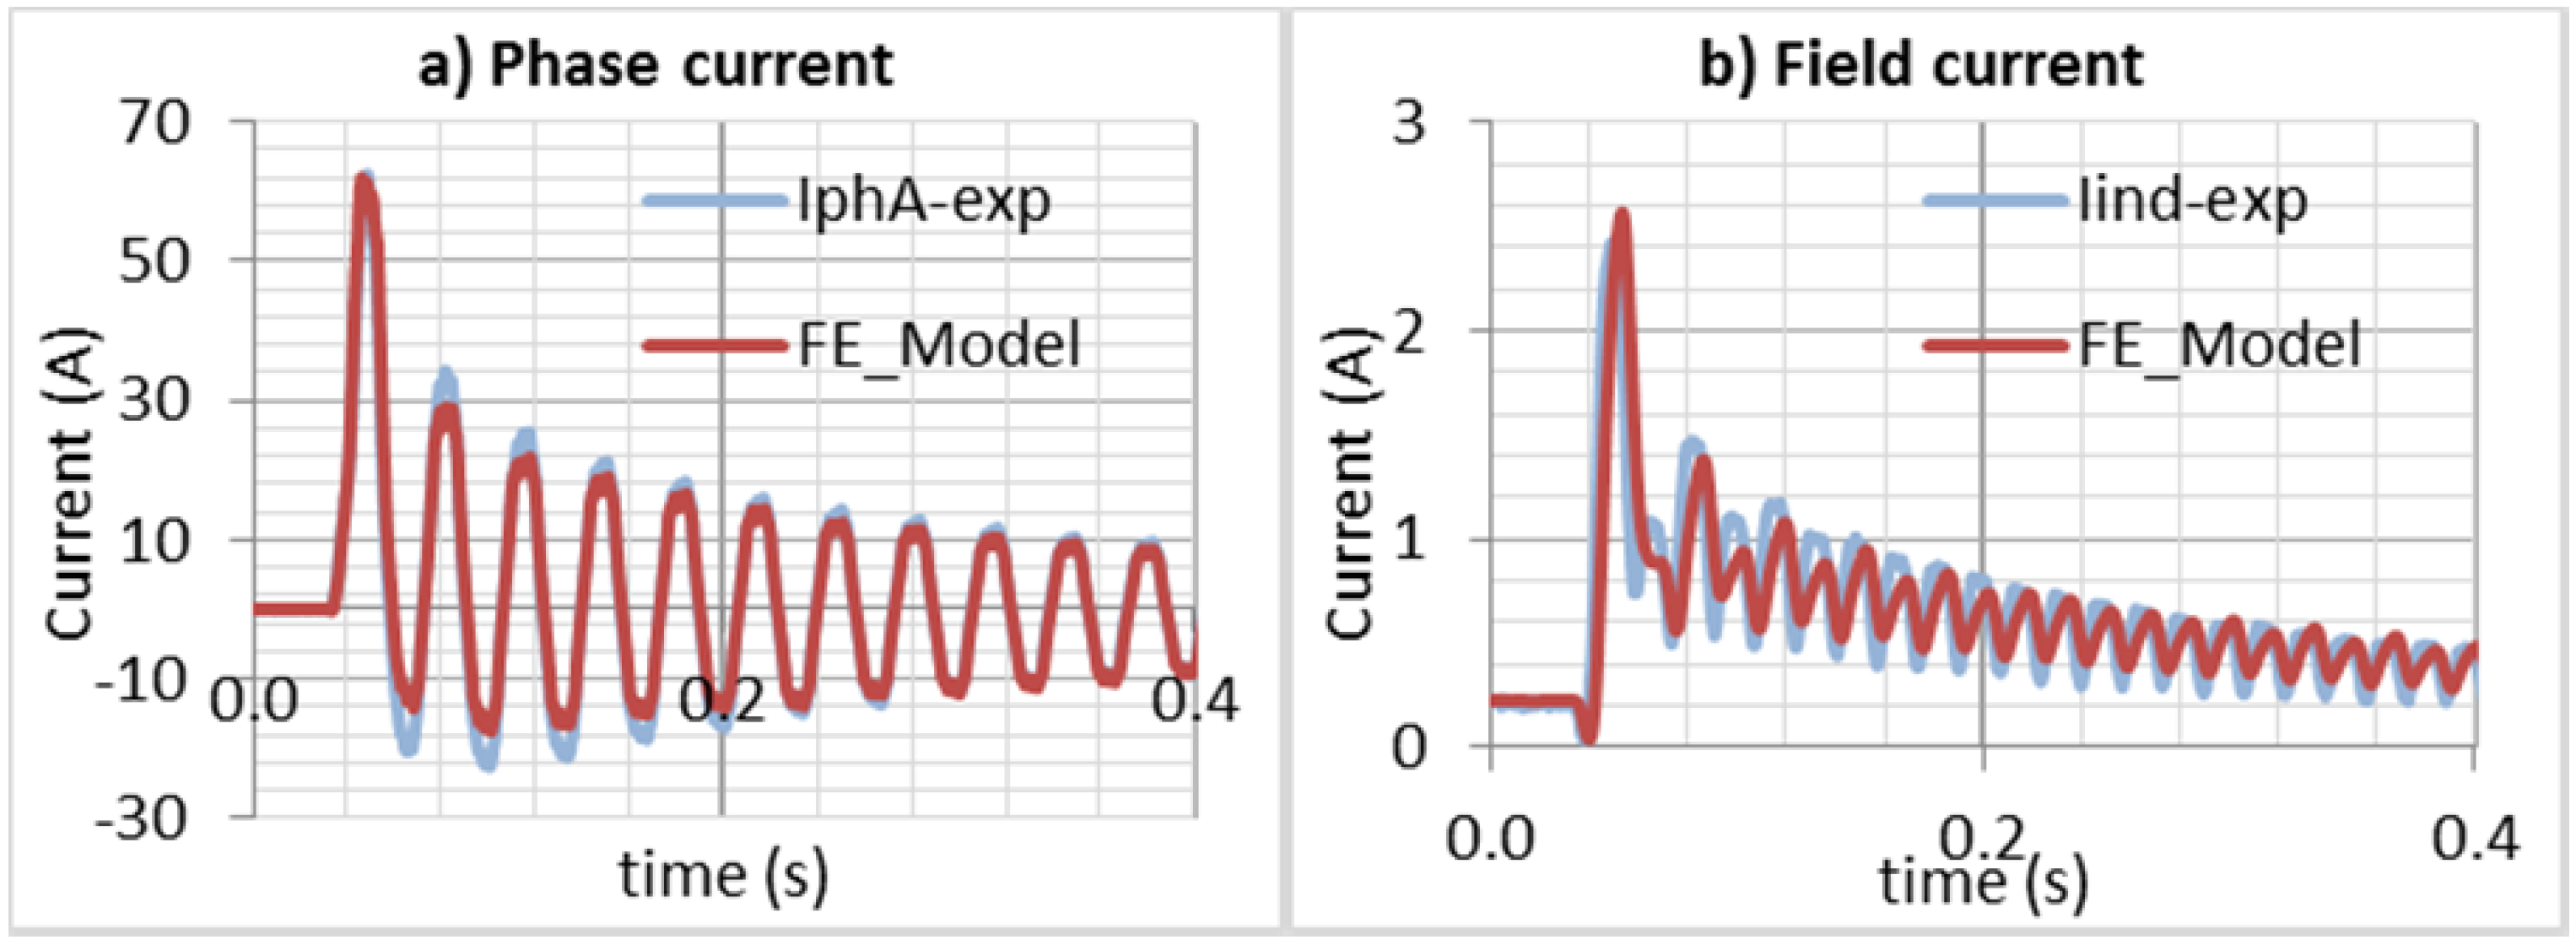 Simulation Methods For The Transient Analysis Of Synchronous Electrical Panels Understanding Relationship Star Delta Figure 45